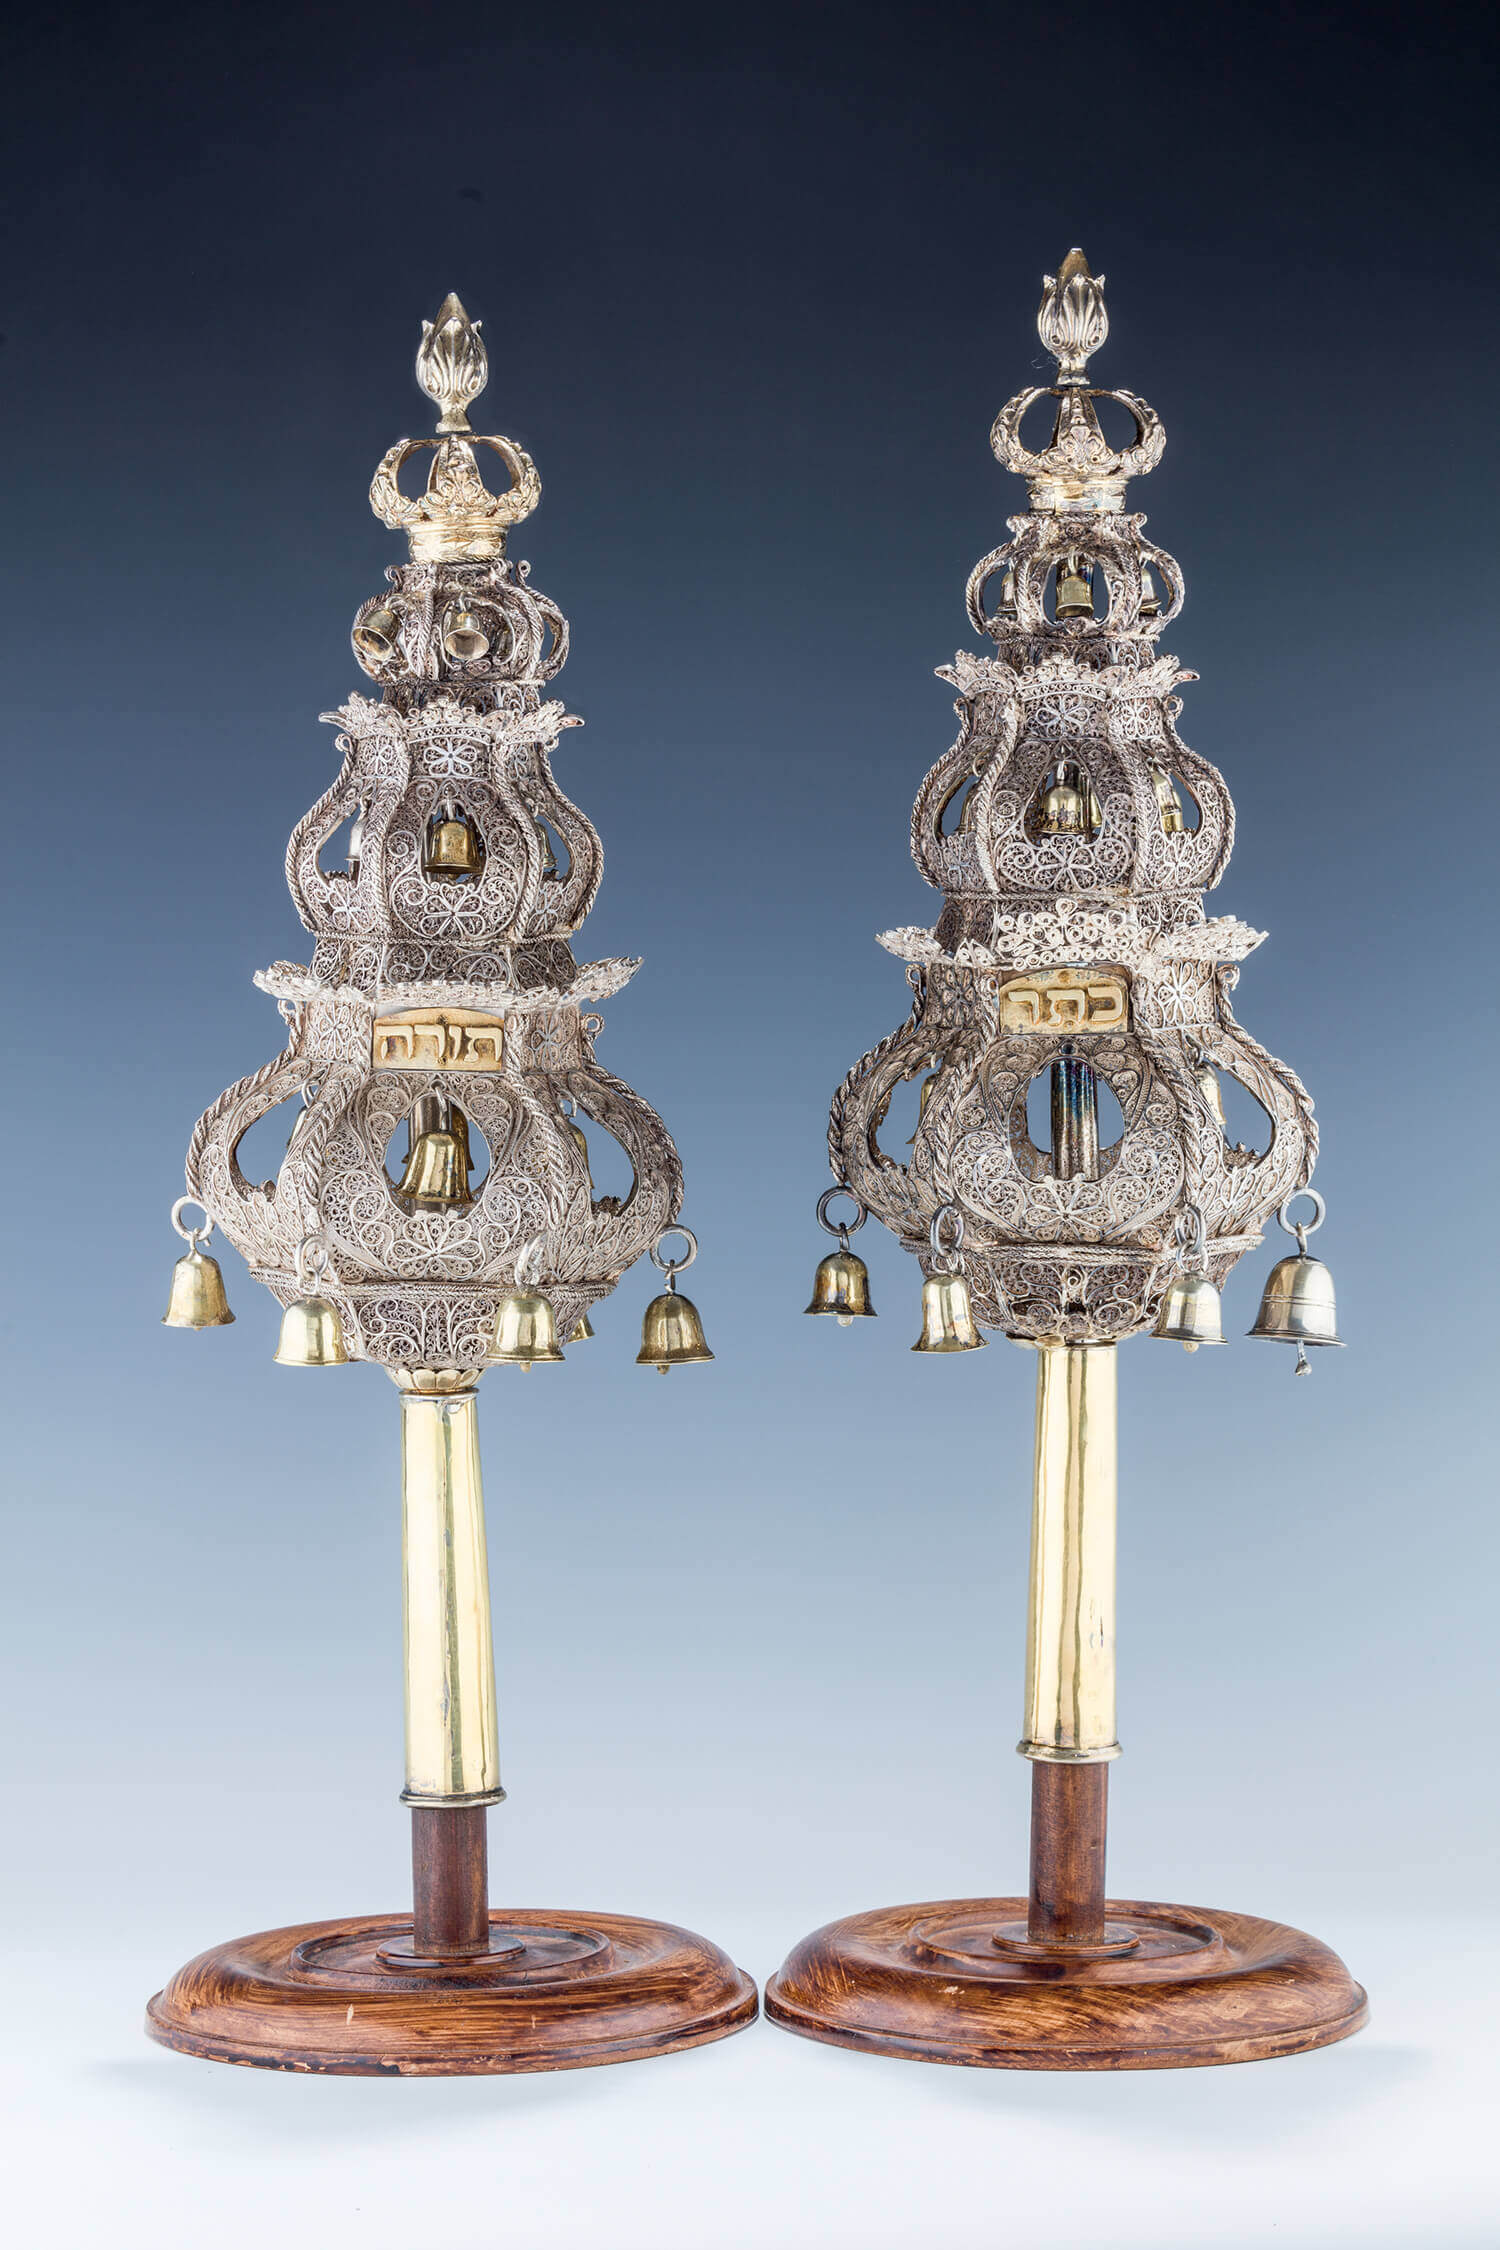 107. A LARGE PAIR OF SILVER FILIGREE TORAH FINIALS